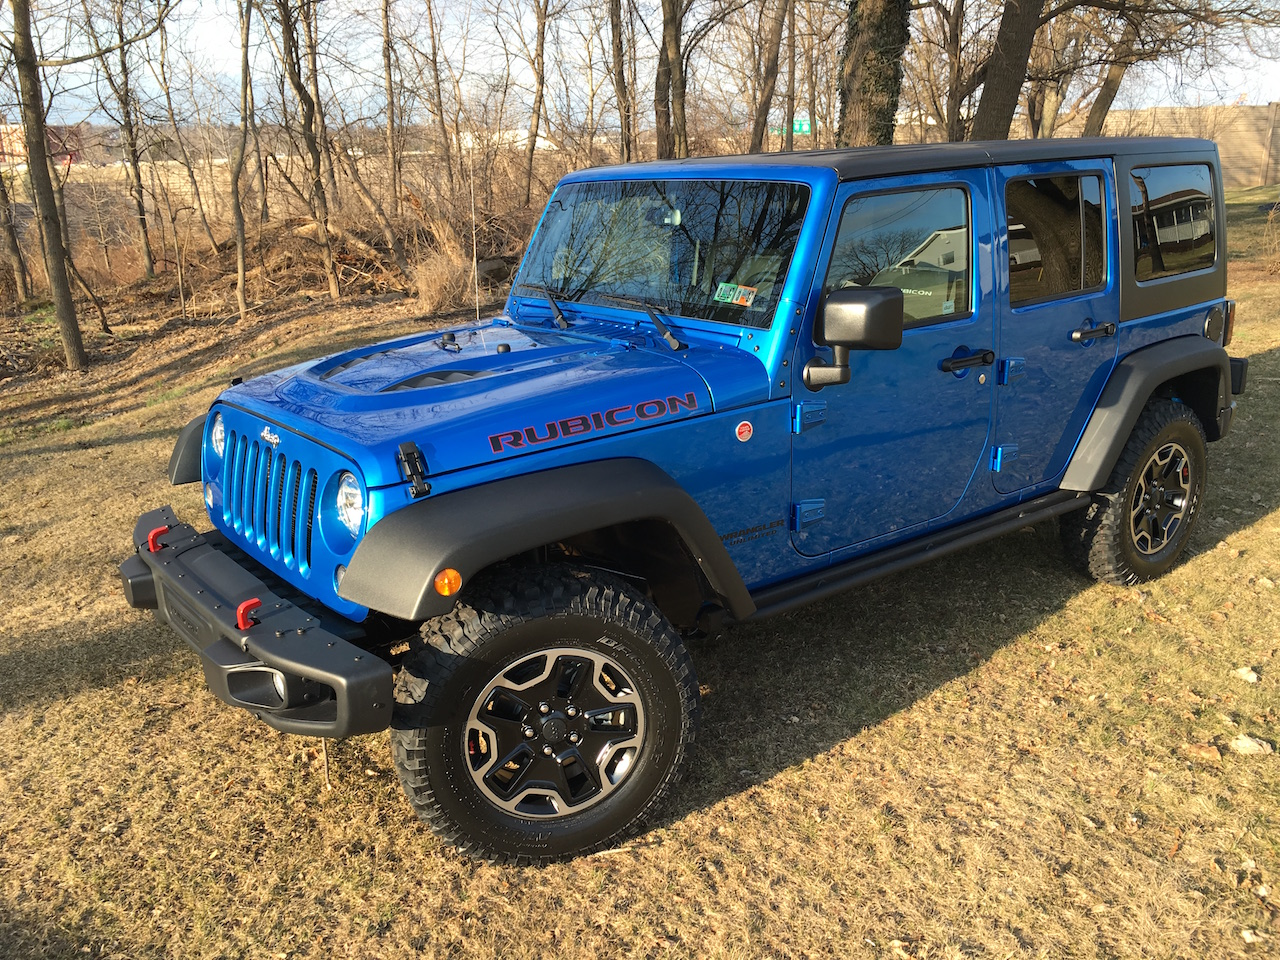 2015 Jeep Wrangler Colors >> Jeep Wrangler JK Models and Special Editions Through the Years – Part 2 | jeepfan.com